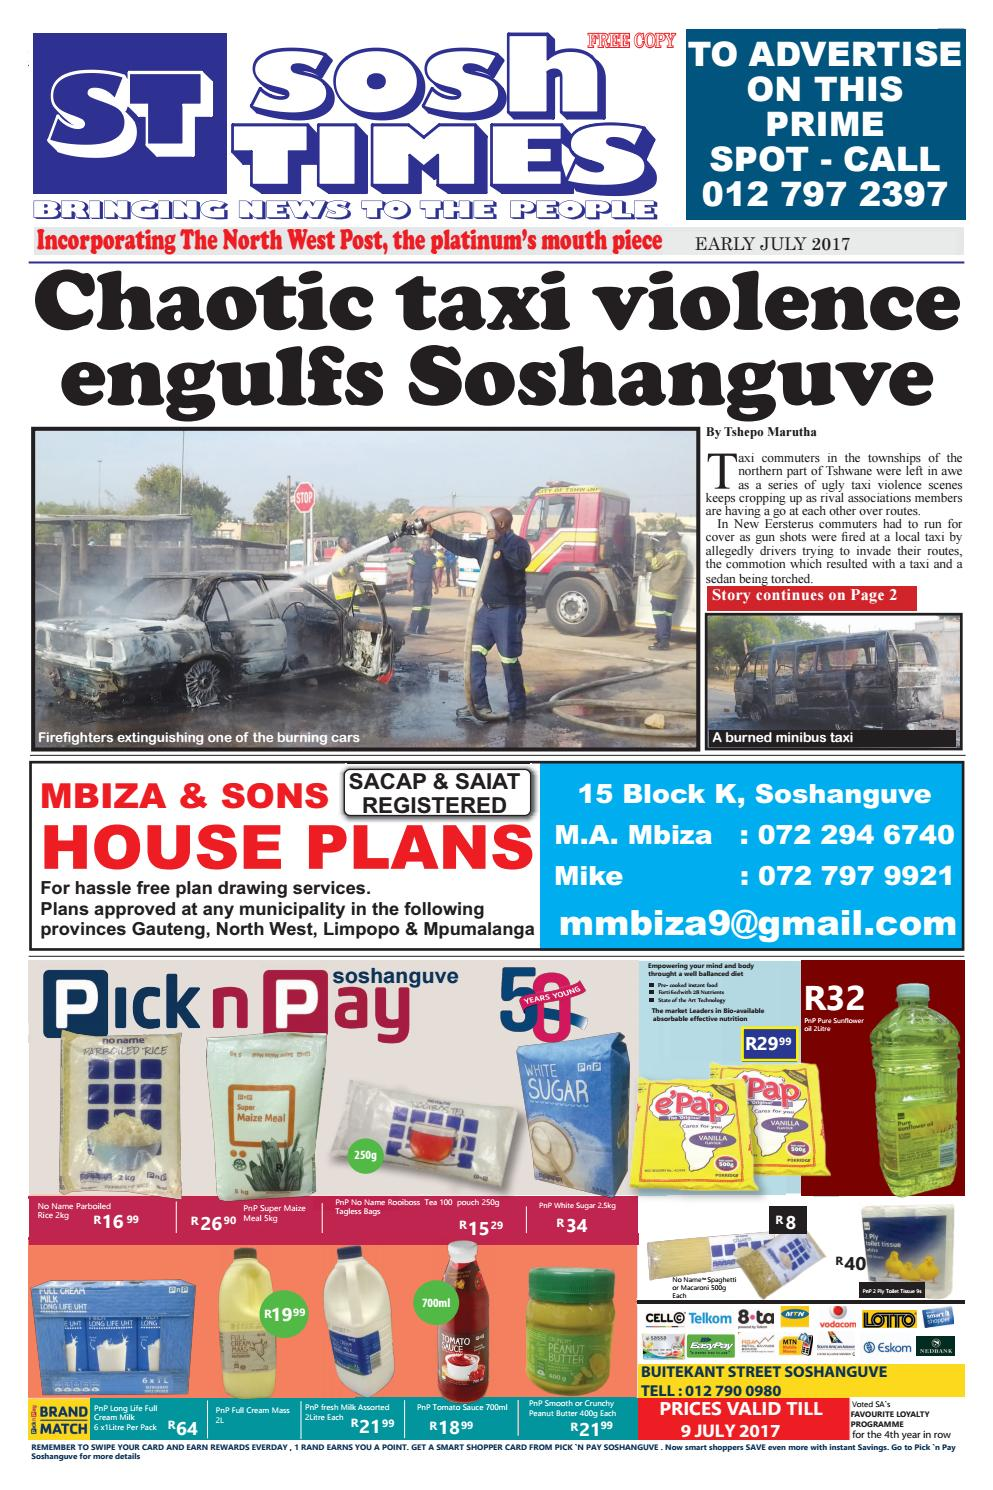 925c6bfff16e Sosh Times Newspaper Early July 2017 by Sosh Times Newspaper - issuu